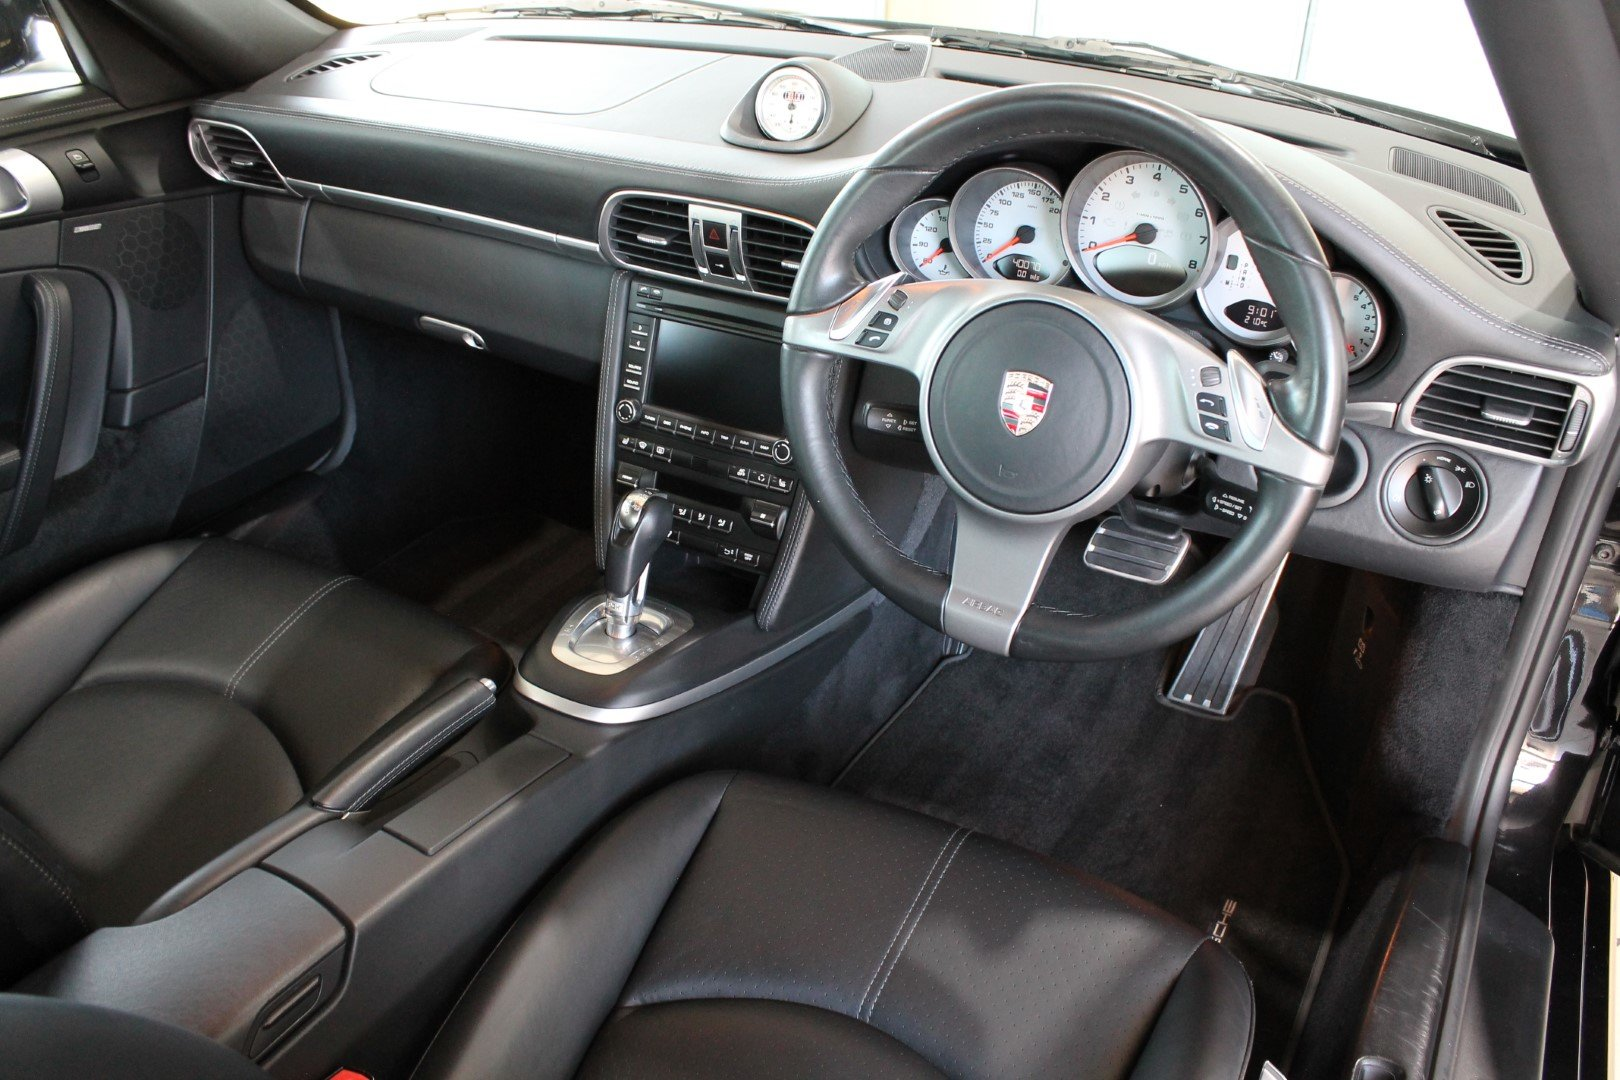 2010 Porsche 911 (997) 3.8 S PDK Coupe For Sale (picture 5 of 6)